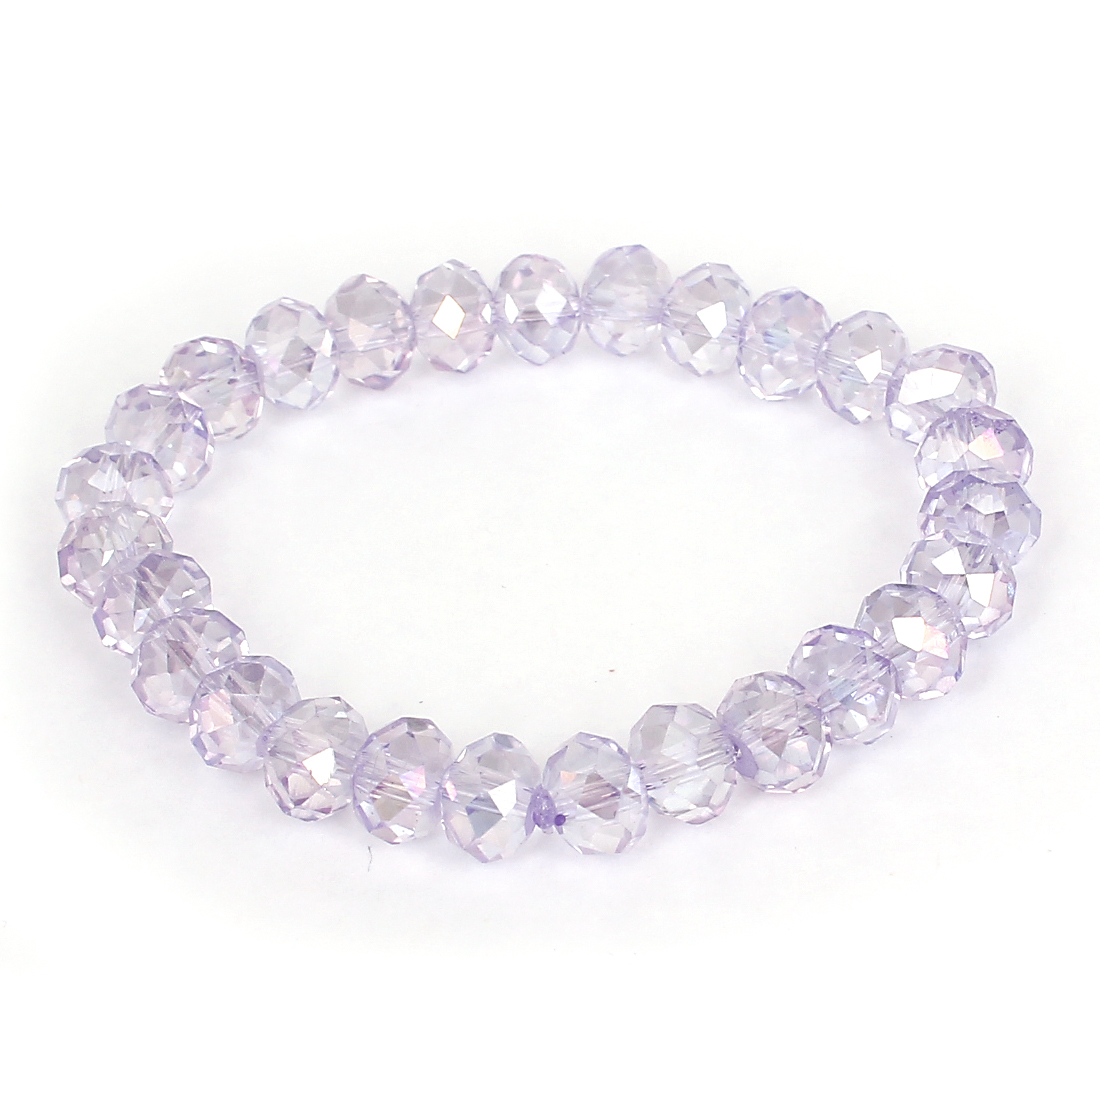 Light Purple Faceted Sparkly Faux Crystal Bead Linked Elastic Band Bracelet for Lady